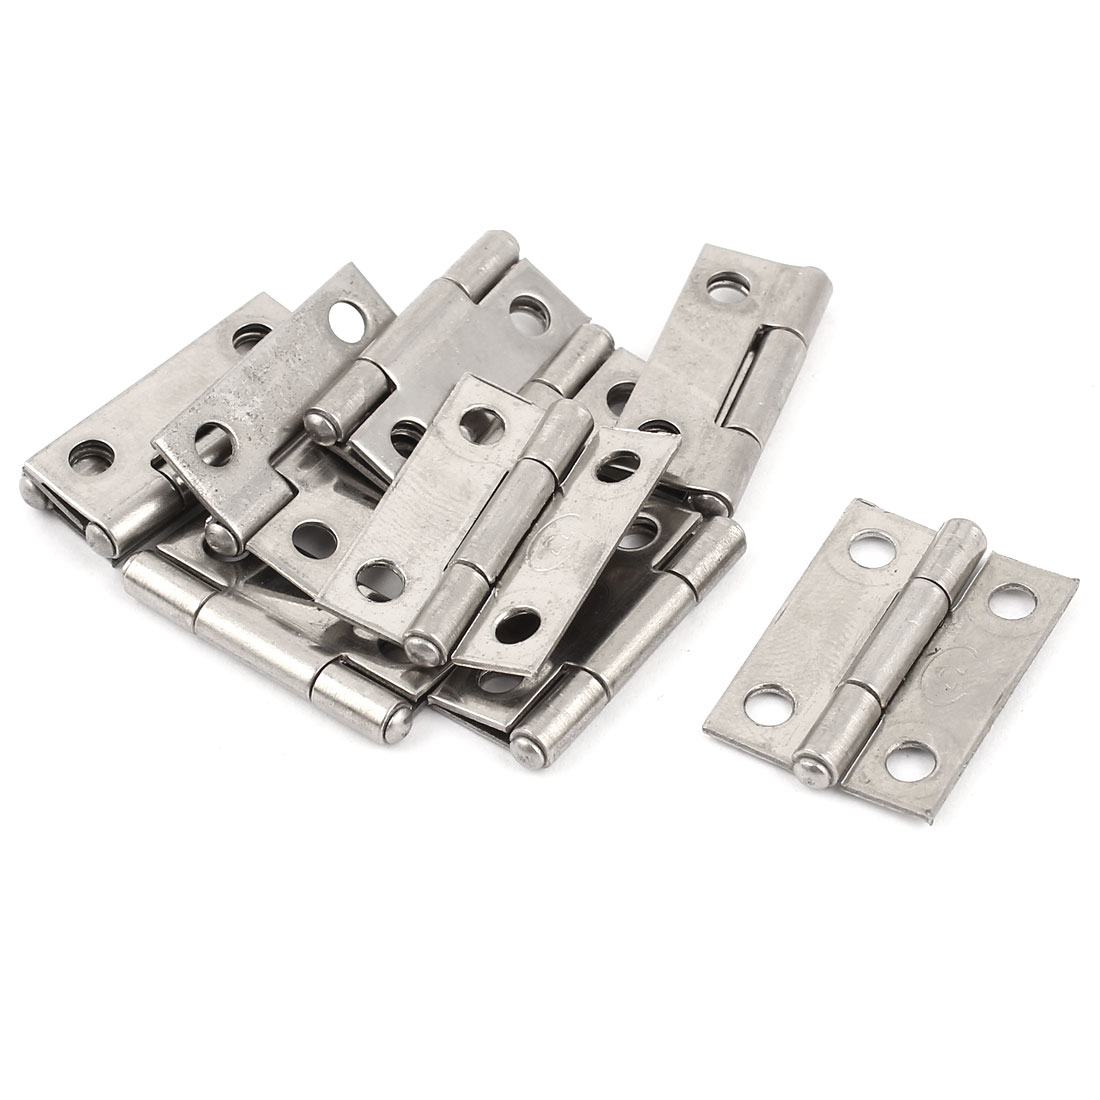 "10 Pcs Home Hardware 27mm 1"" Long Metal Butt Hinge Silver Tone for Drawer Door"